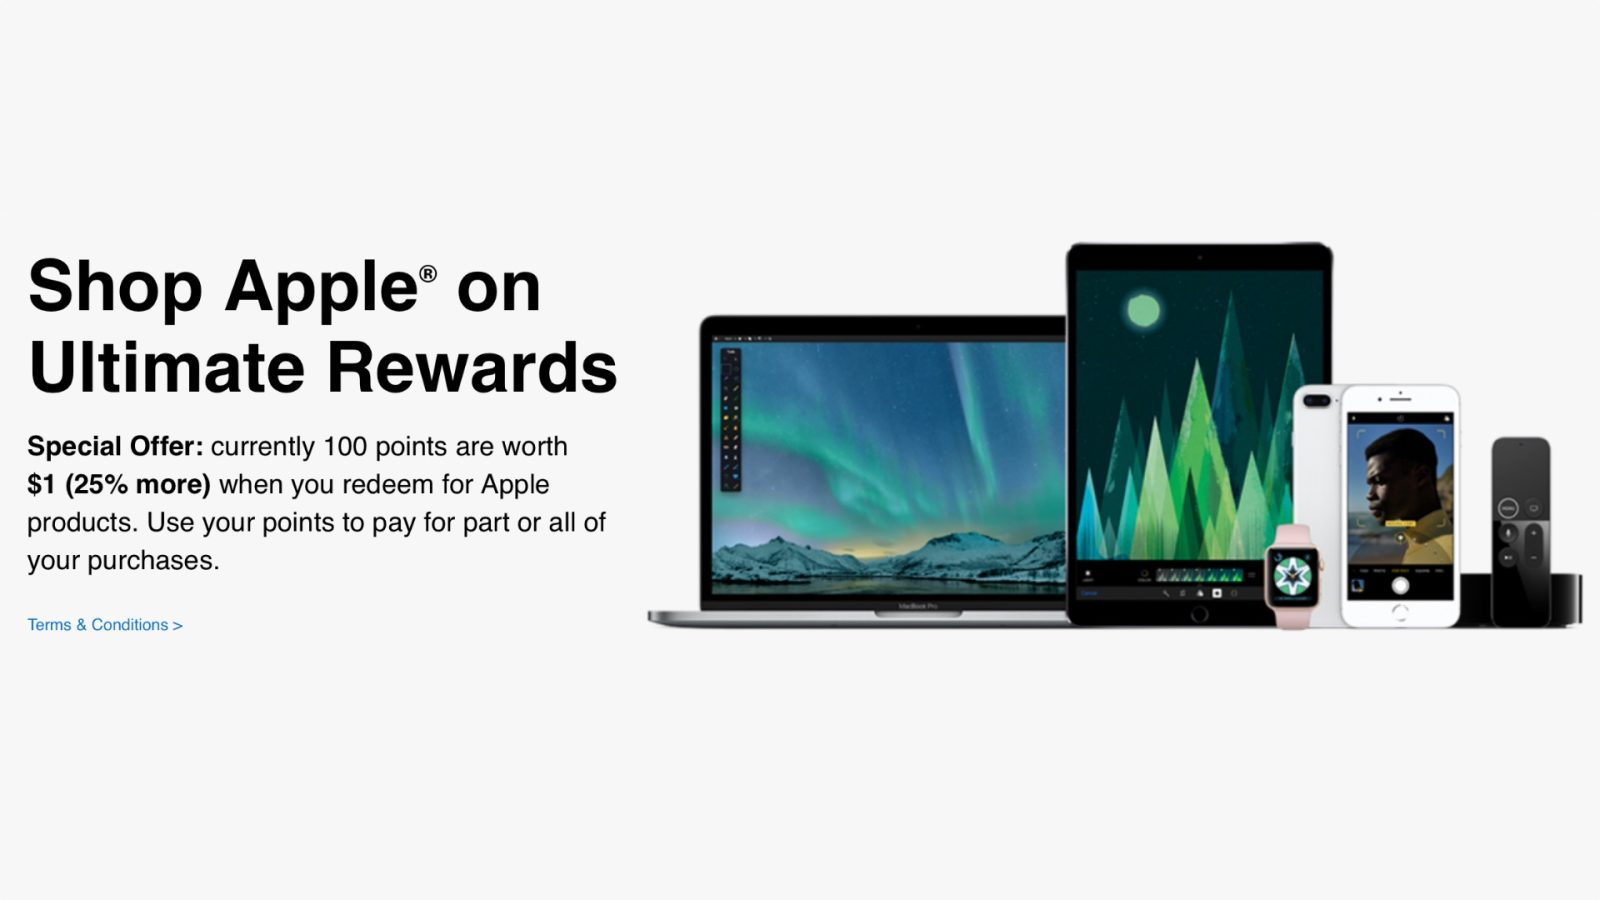 Chase launches Apple Ultimate Rewards Store for buying products with